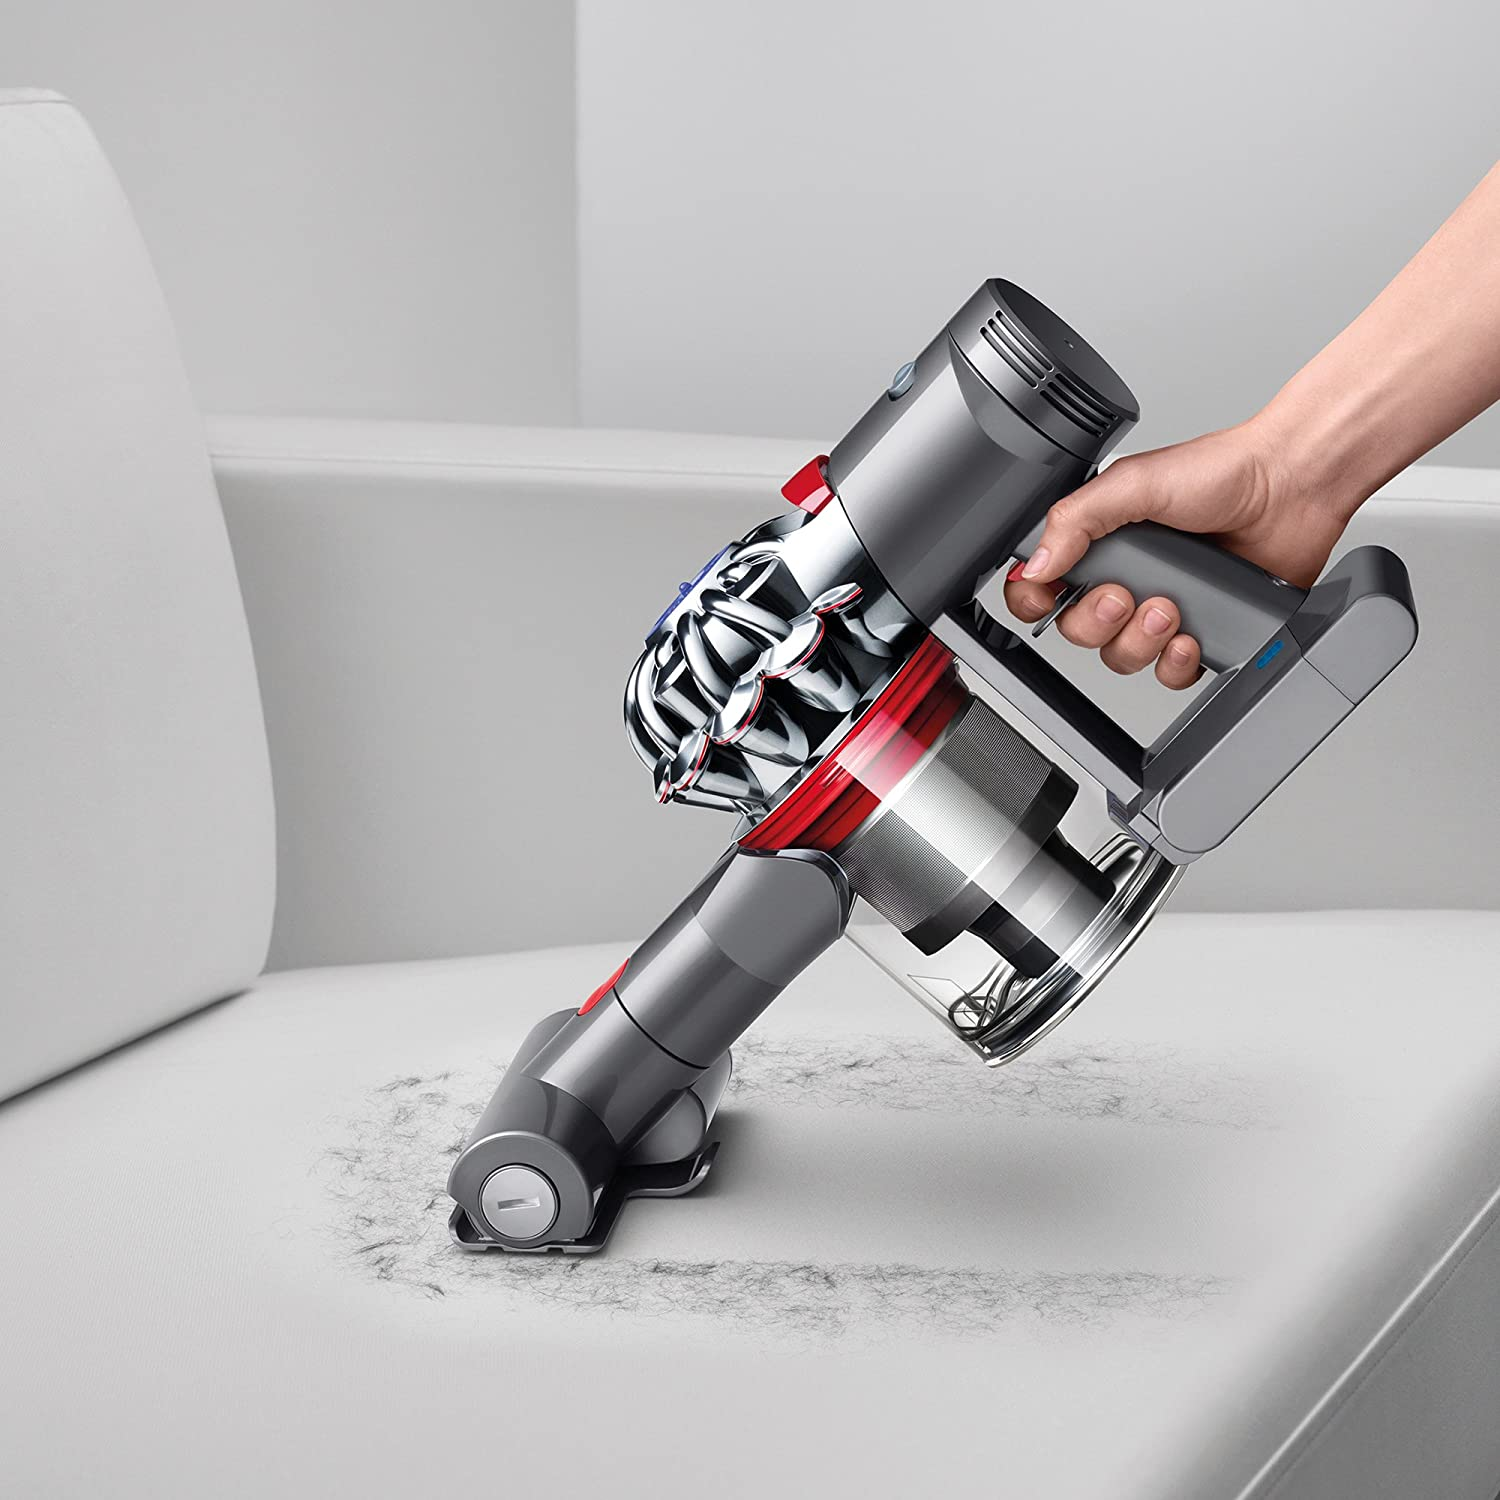 Top Rated Cordless Handheld Vacuum for stair